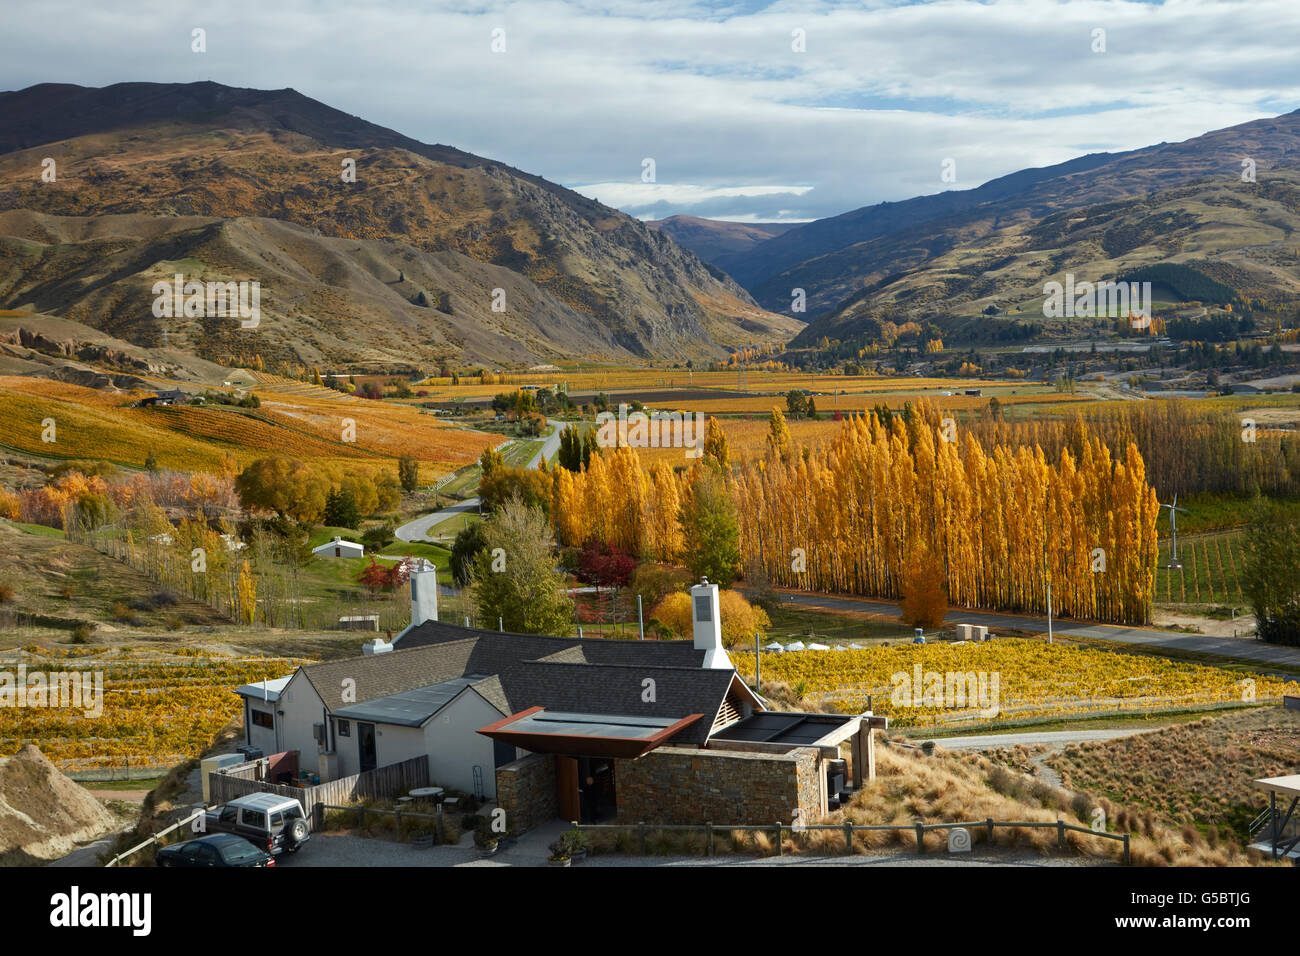 The Winery Restaurant, Mt Difficulty Vineyard, Bannockburn, near Cromwell, Central Otago, South Island, New Zealand - Stock Image